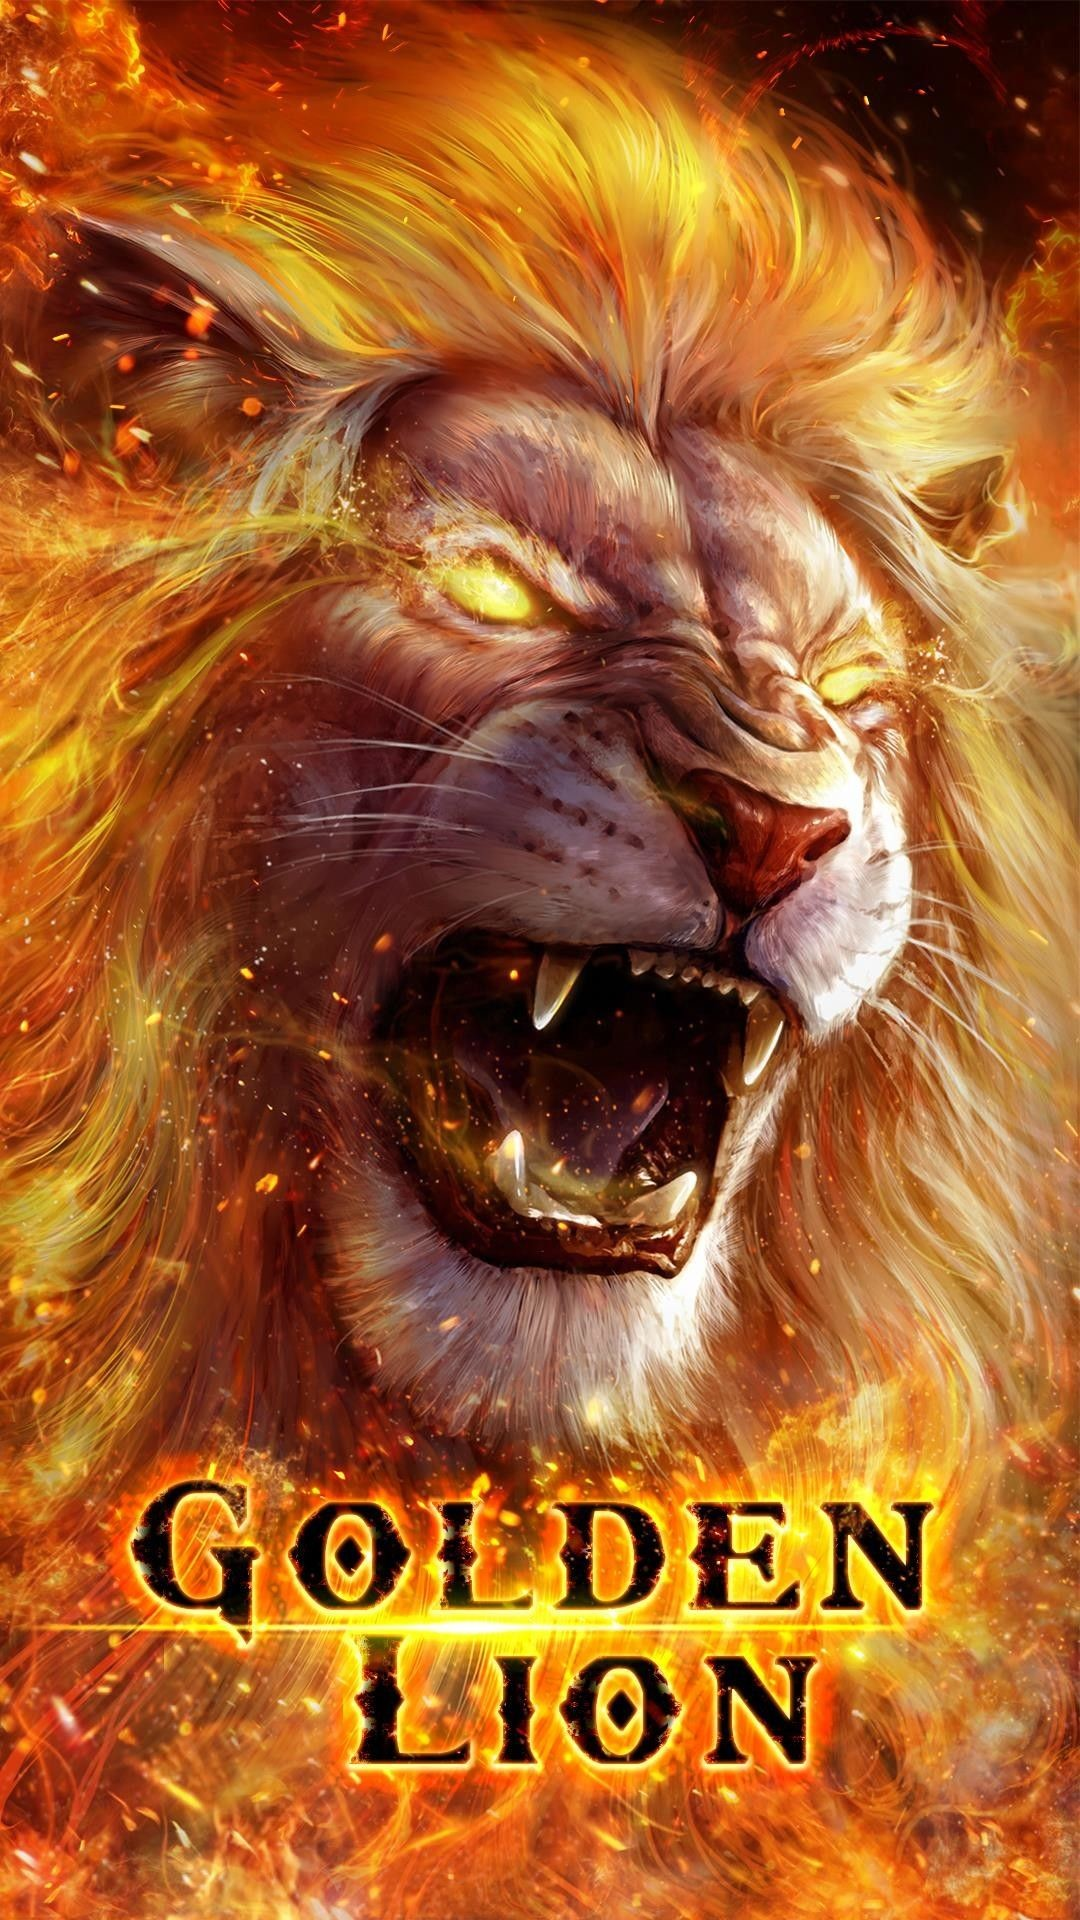 Res: 1080x1920, Explore Lions Live, Roaring Lion, and more!